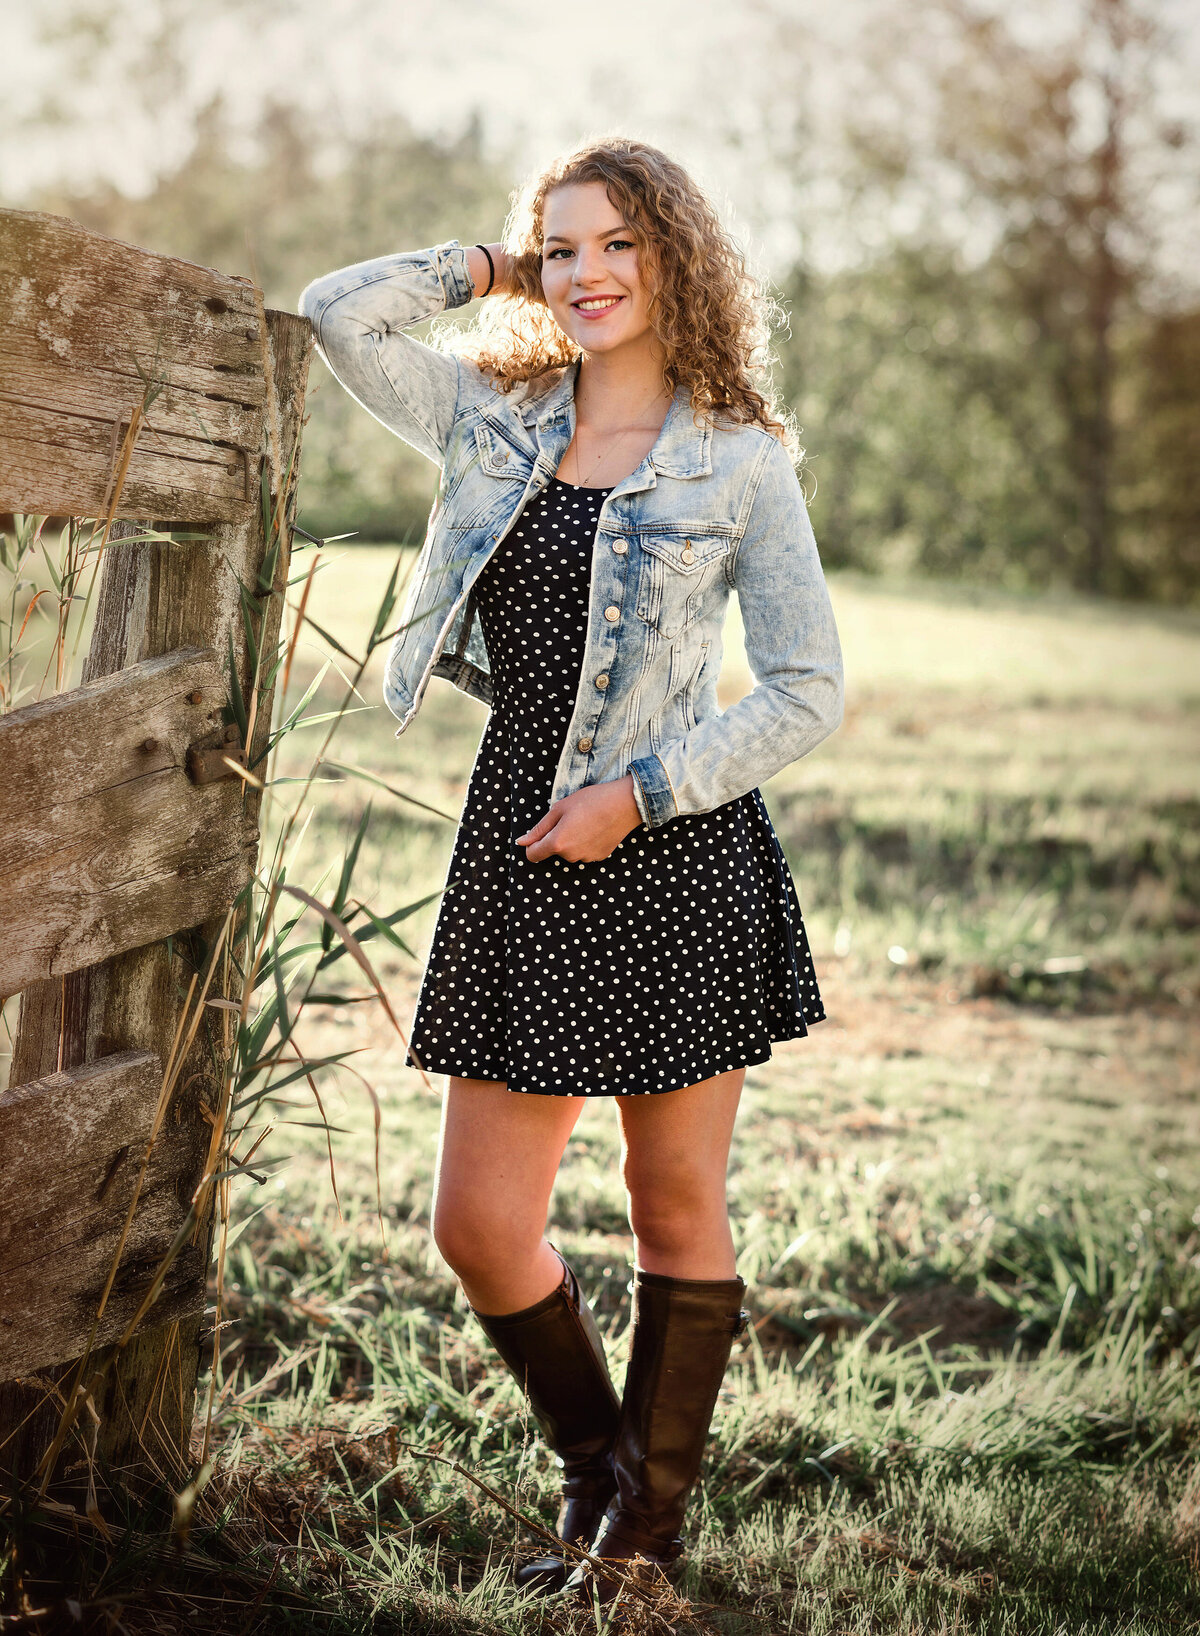 Skagit Senior Portrait Photographer 64